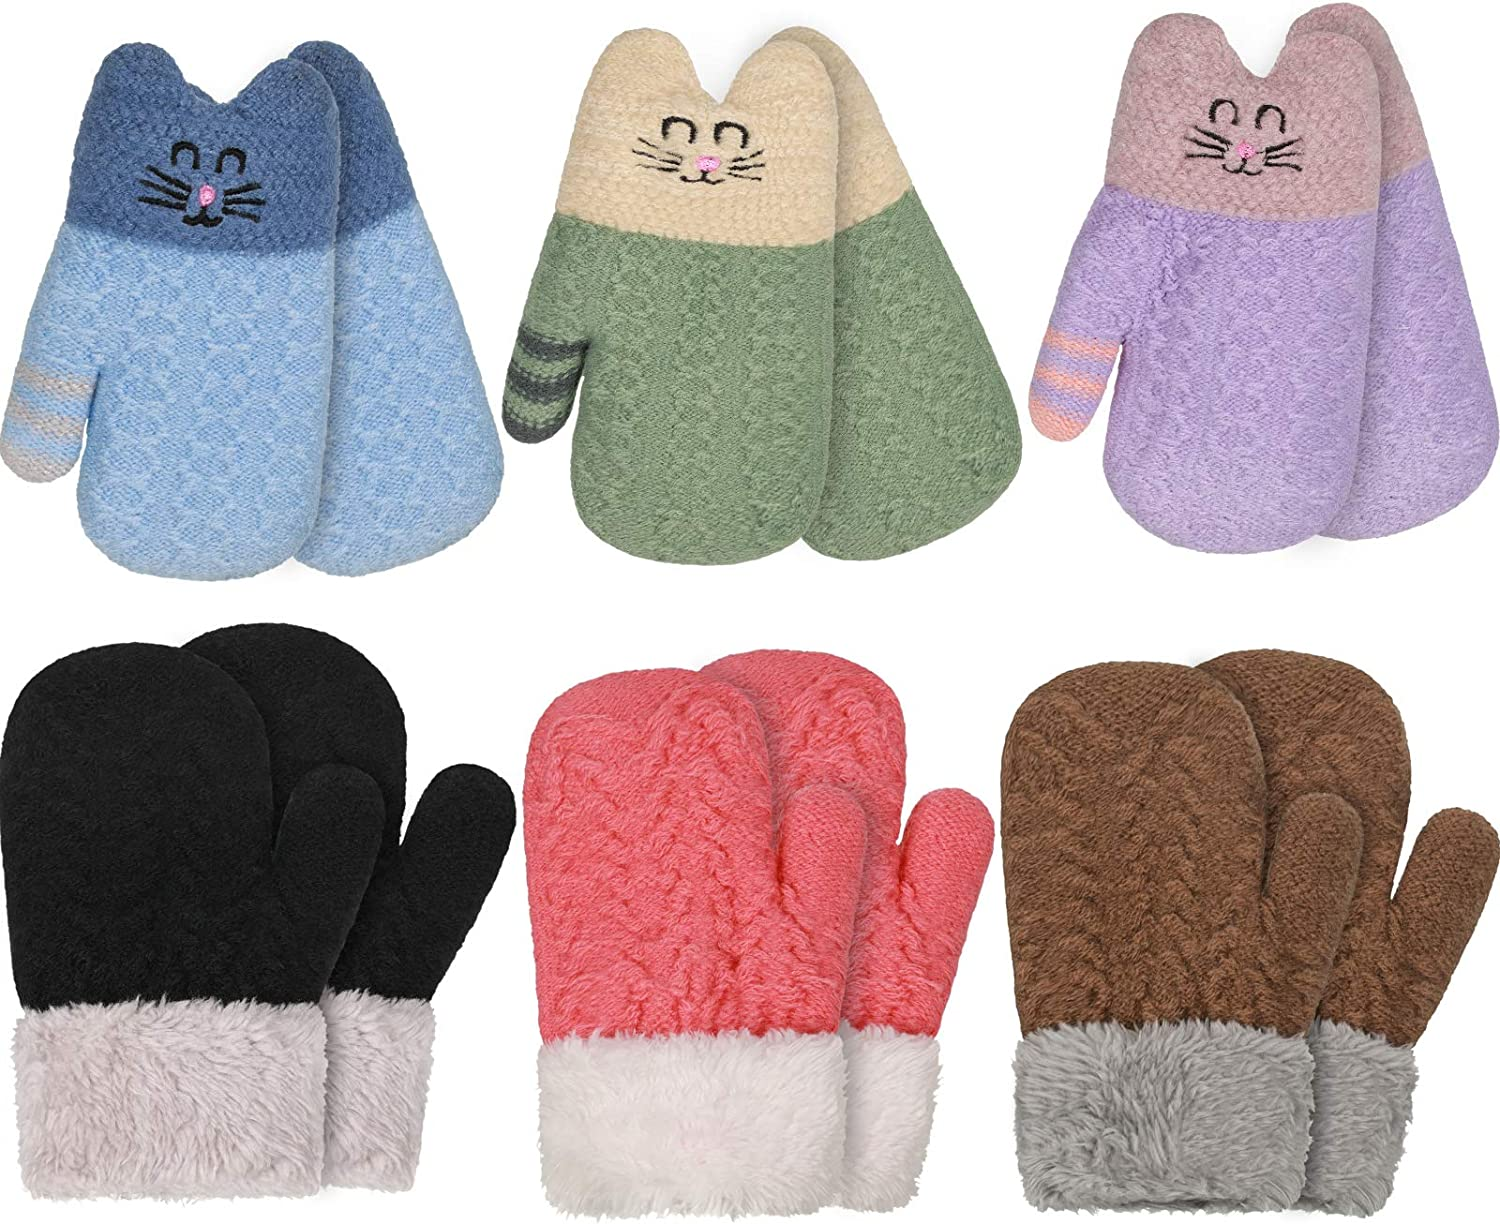 6 Pairs Kids Sherpa Lined Knit Mittens Cute Warm Cat Winter Gloves Furry Cuff Knitted Gloves for Boys Girls Baby Toddler Infant Newborn